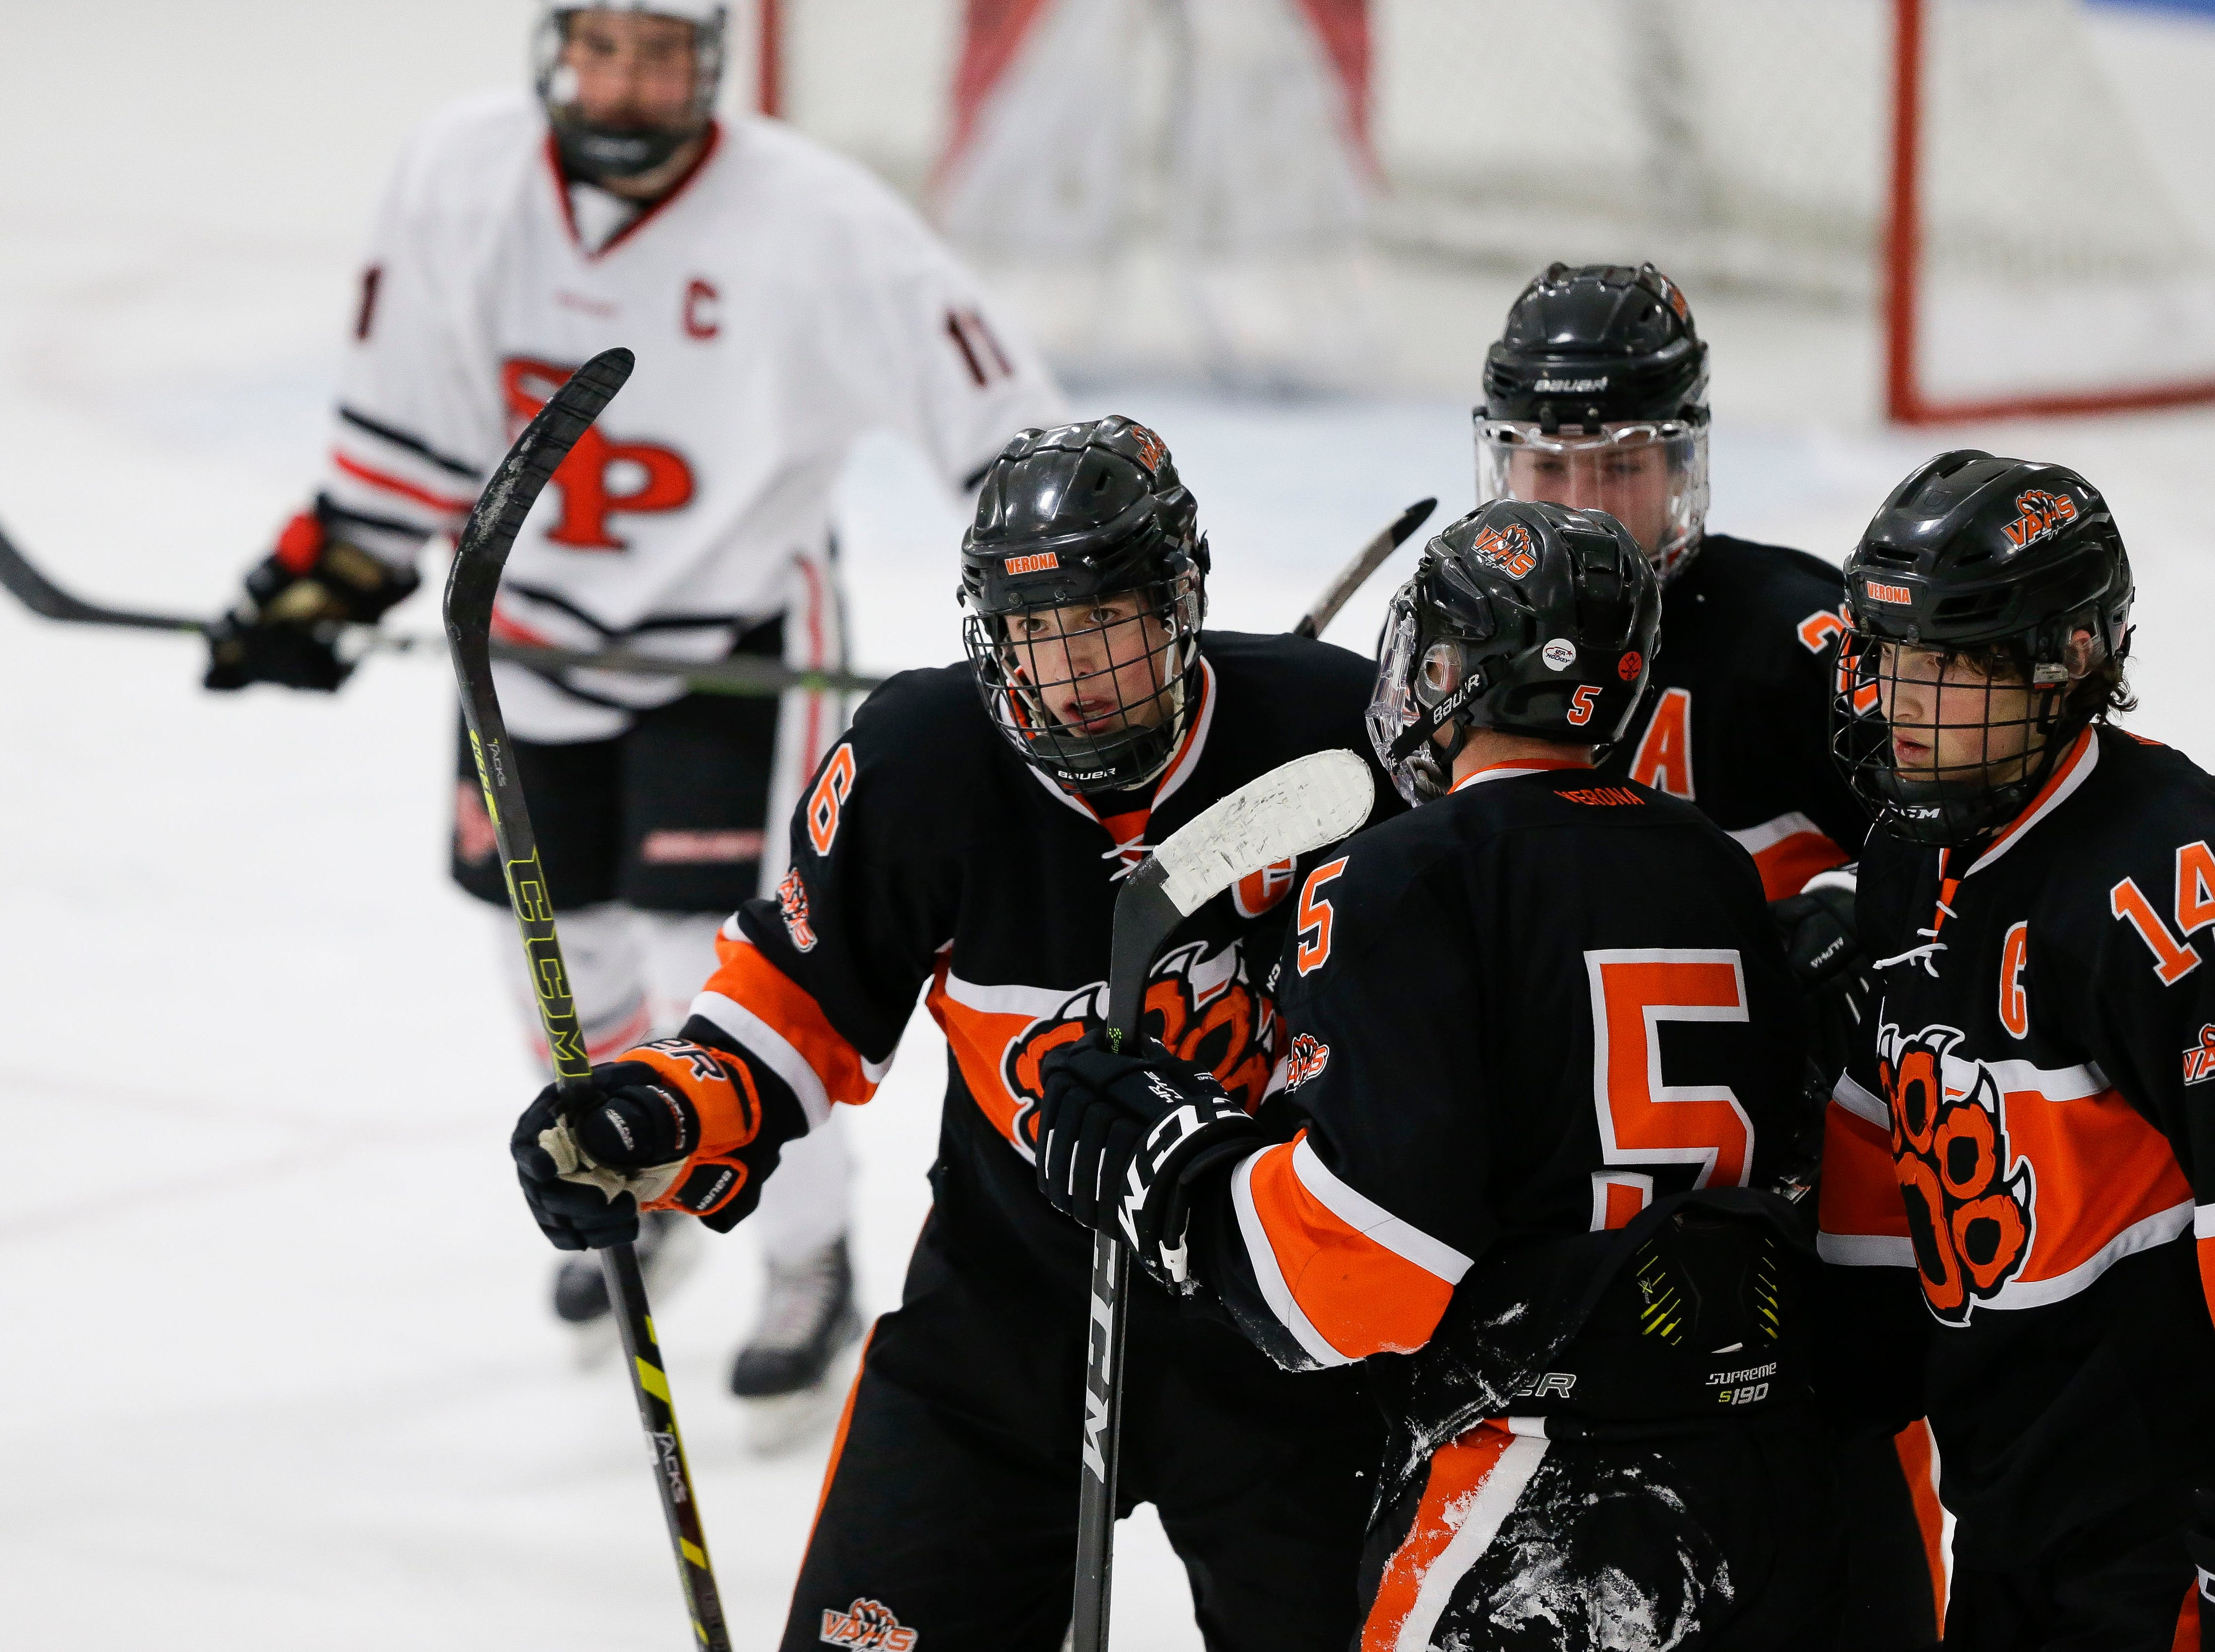 Verona's Kade Binger (6) celebrates with his teammates after scoring a goal against SPASH on Saturday, January 26, 2019, at K.B. Willett Ice Arena in Stevens Point, Wis. Tork Mason/USA TODAY NETWORK-Wisconsin